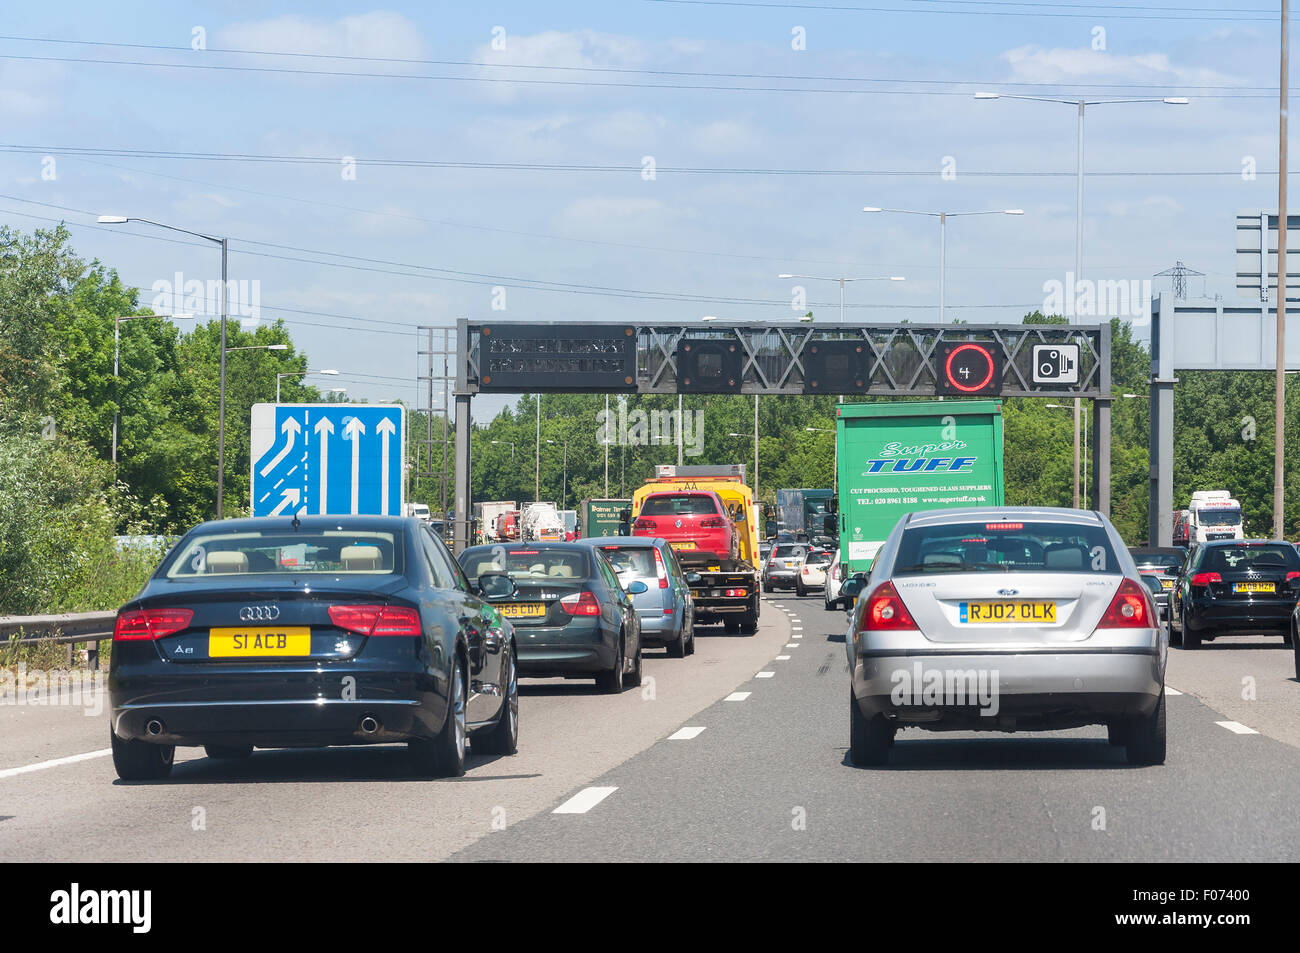 Traffic jam and speed restrictions on M25 Motorway, Surrey, England, United Kingdom - Stock Image